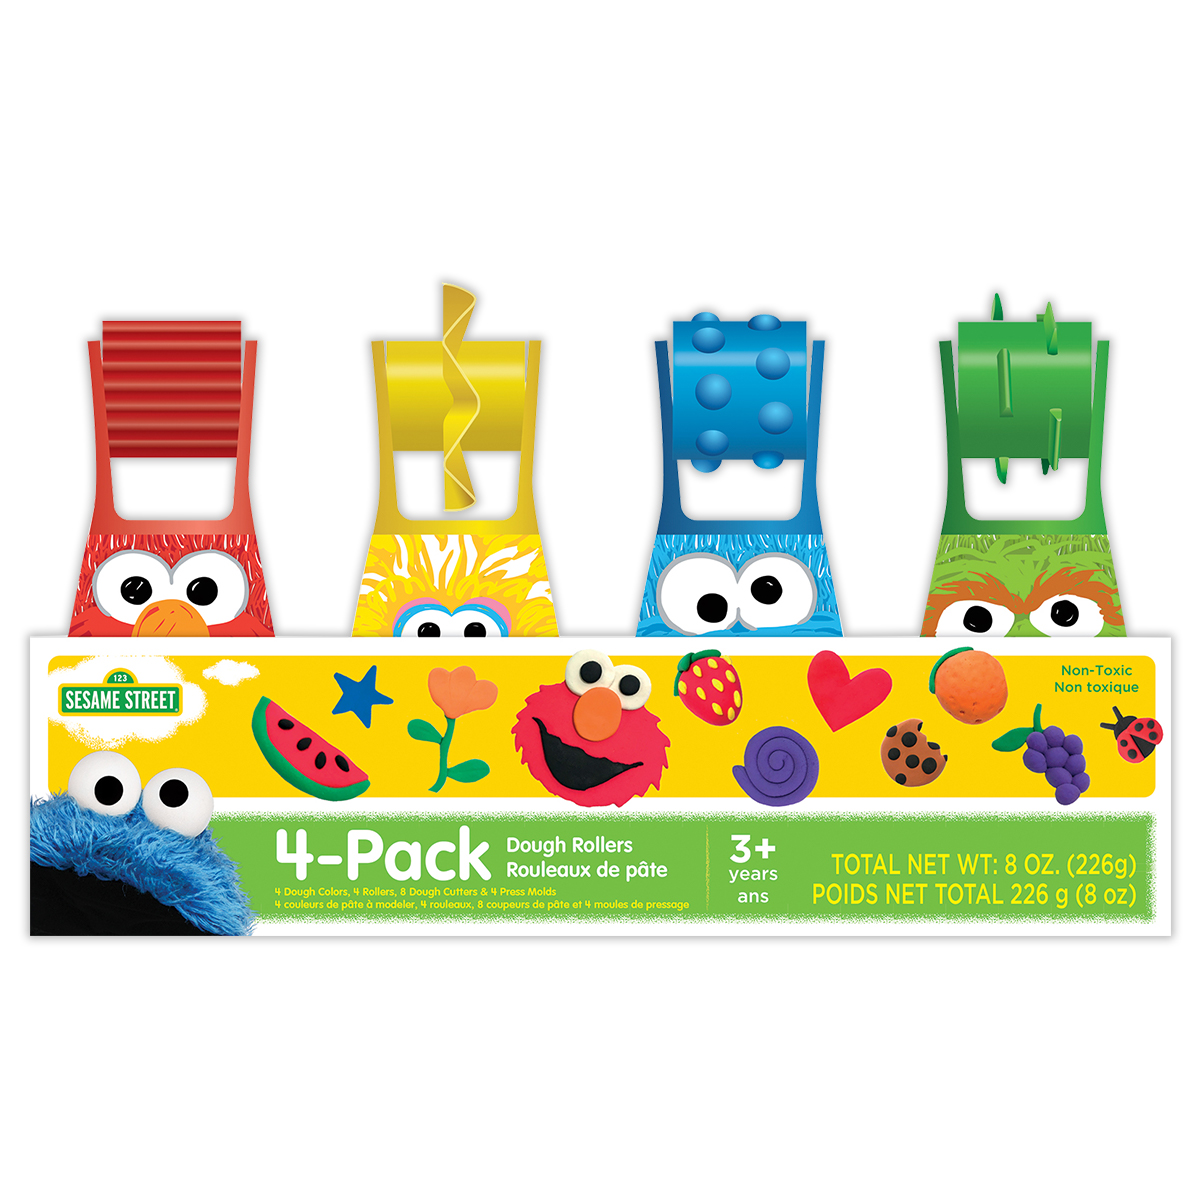 Sesame Street 4-Pack of Dough Rollers